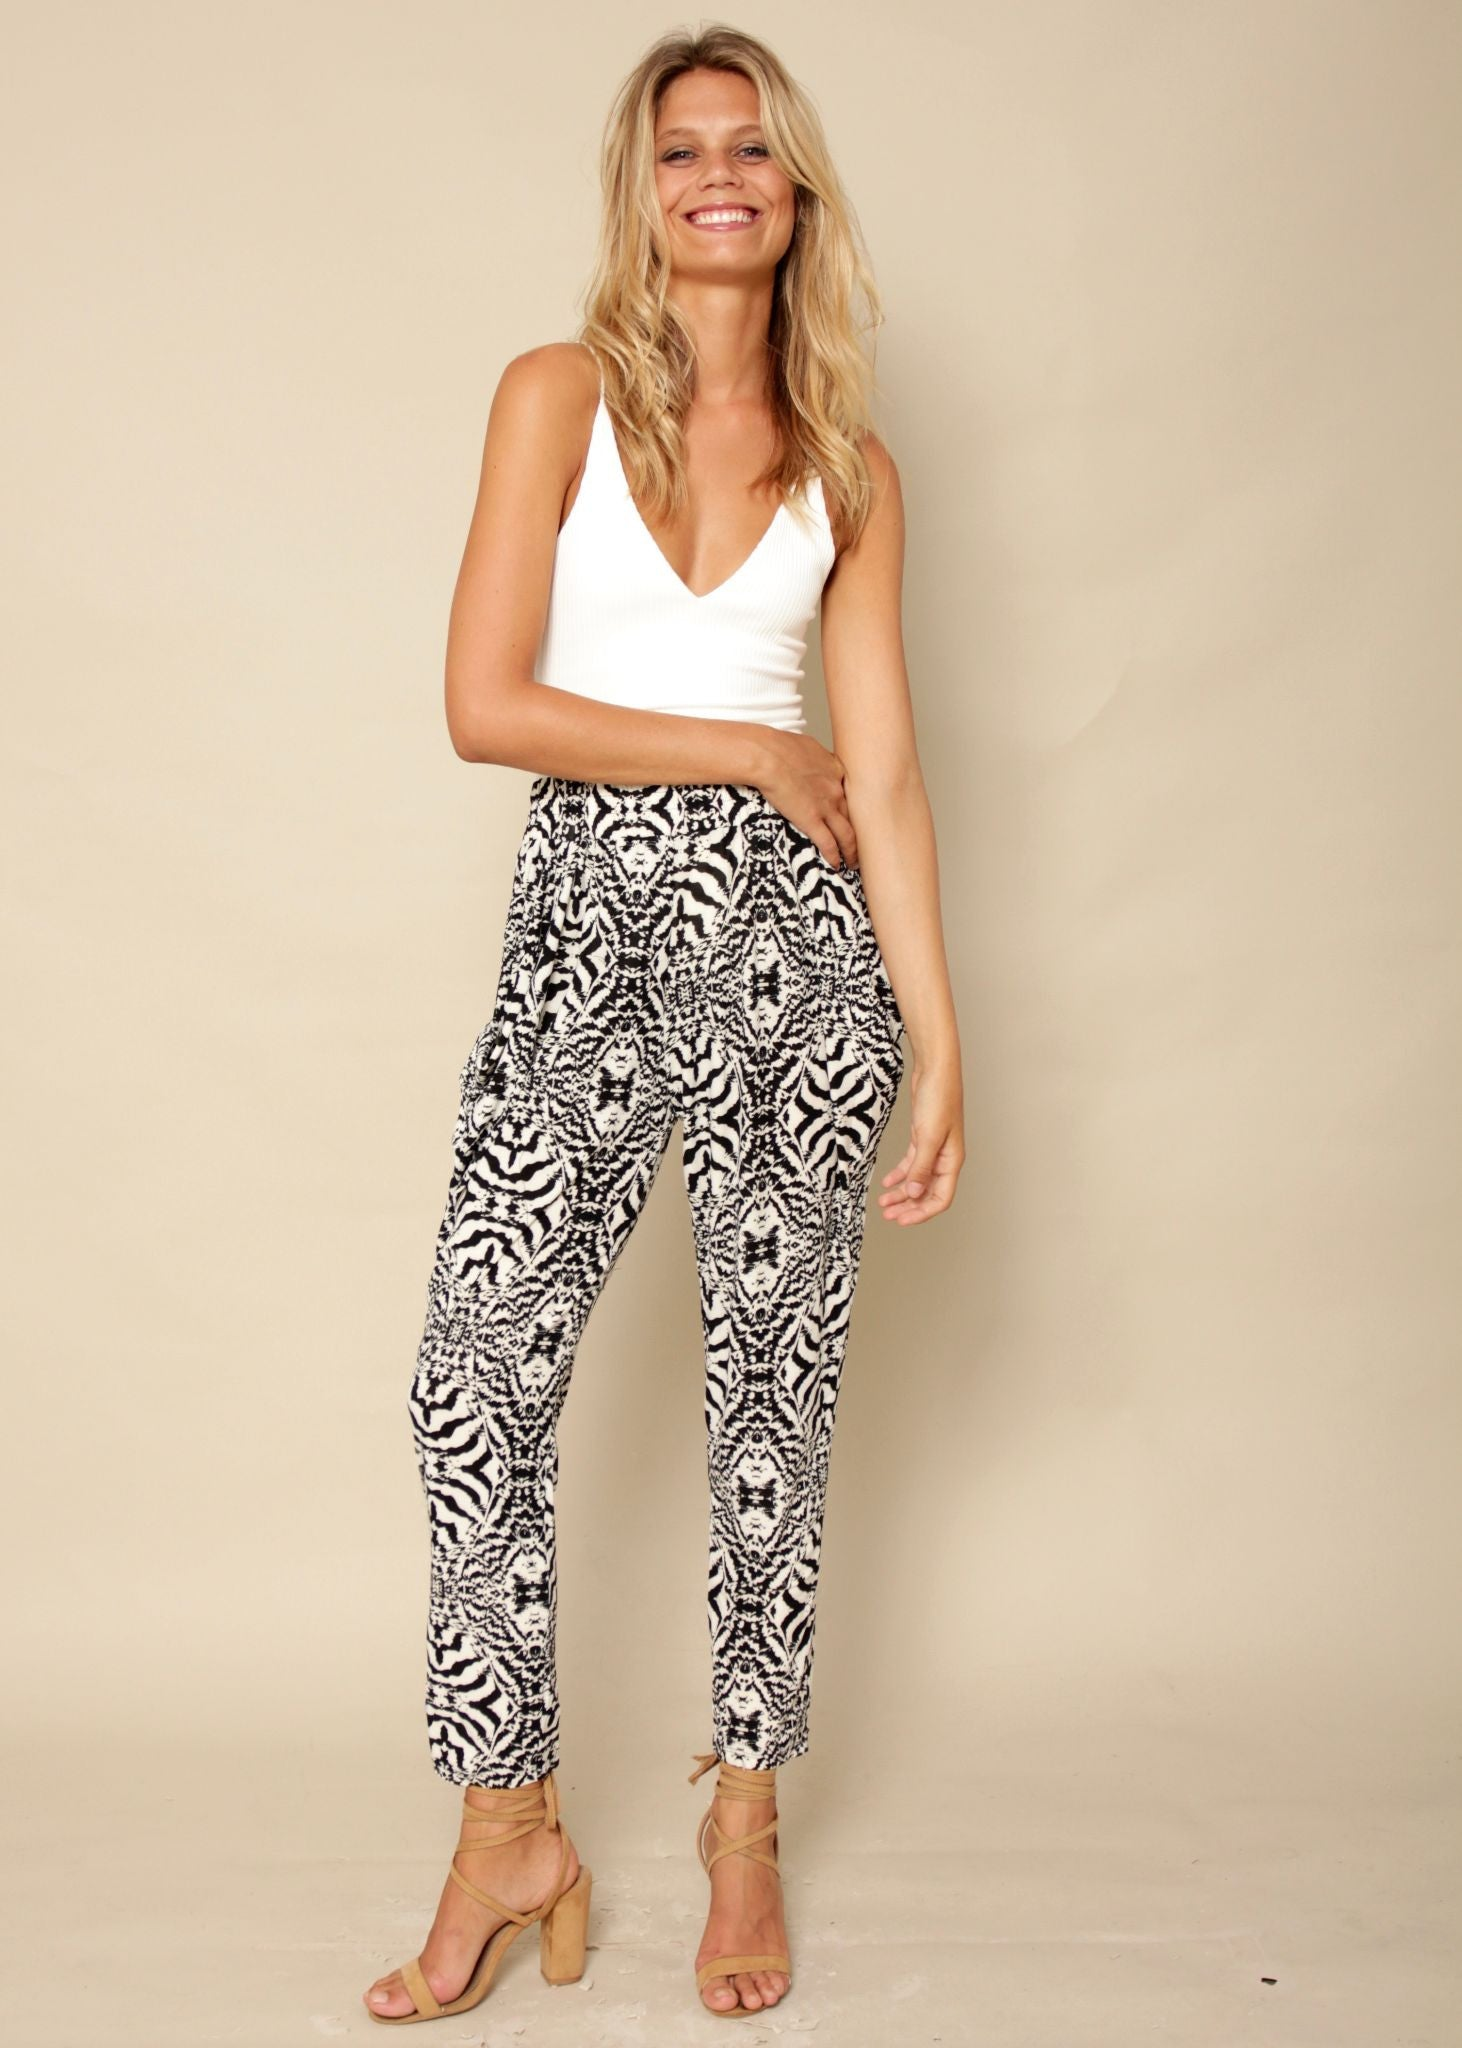 Little Sway Pants - Cream/Black